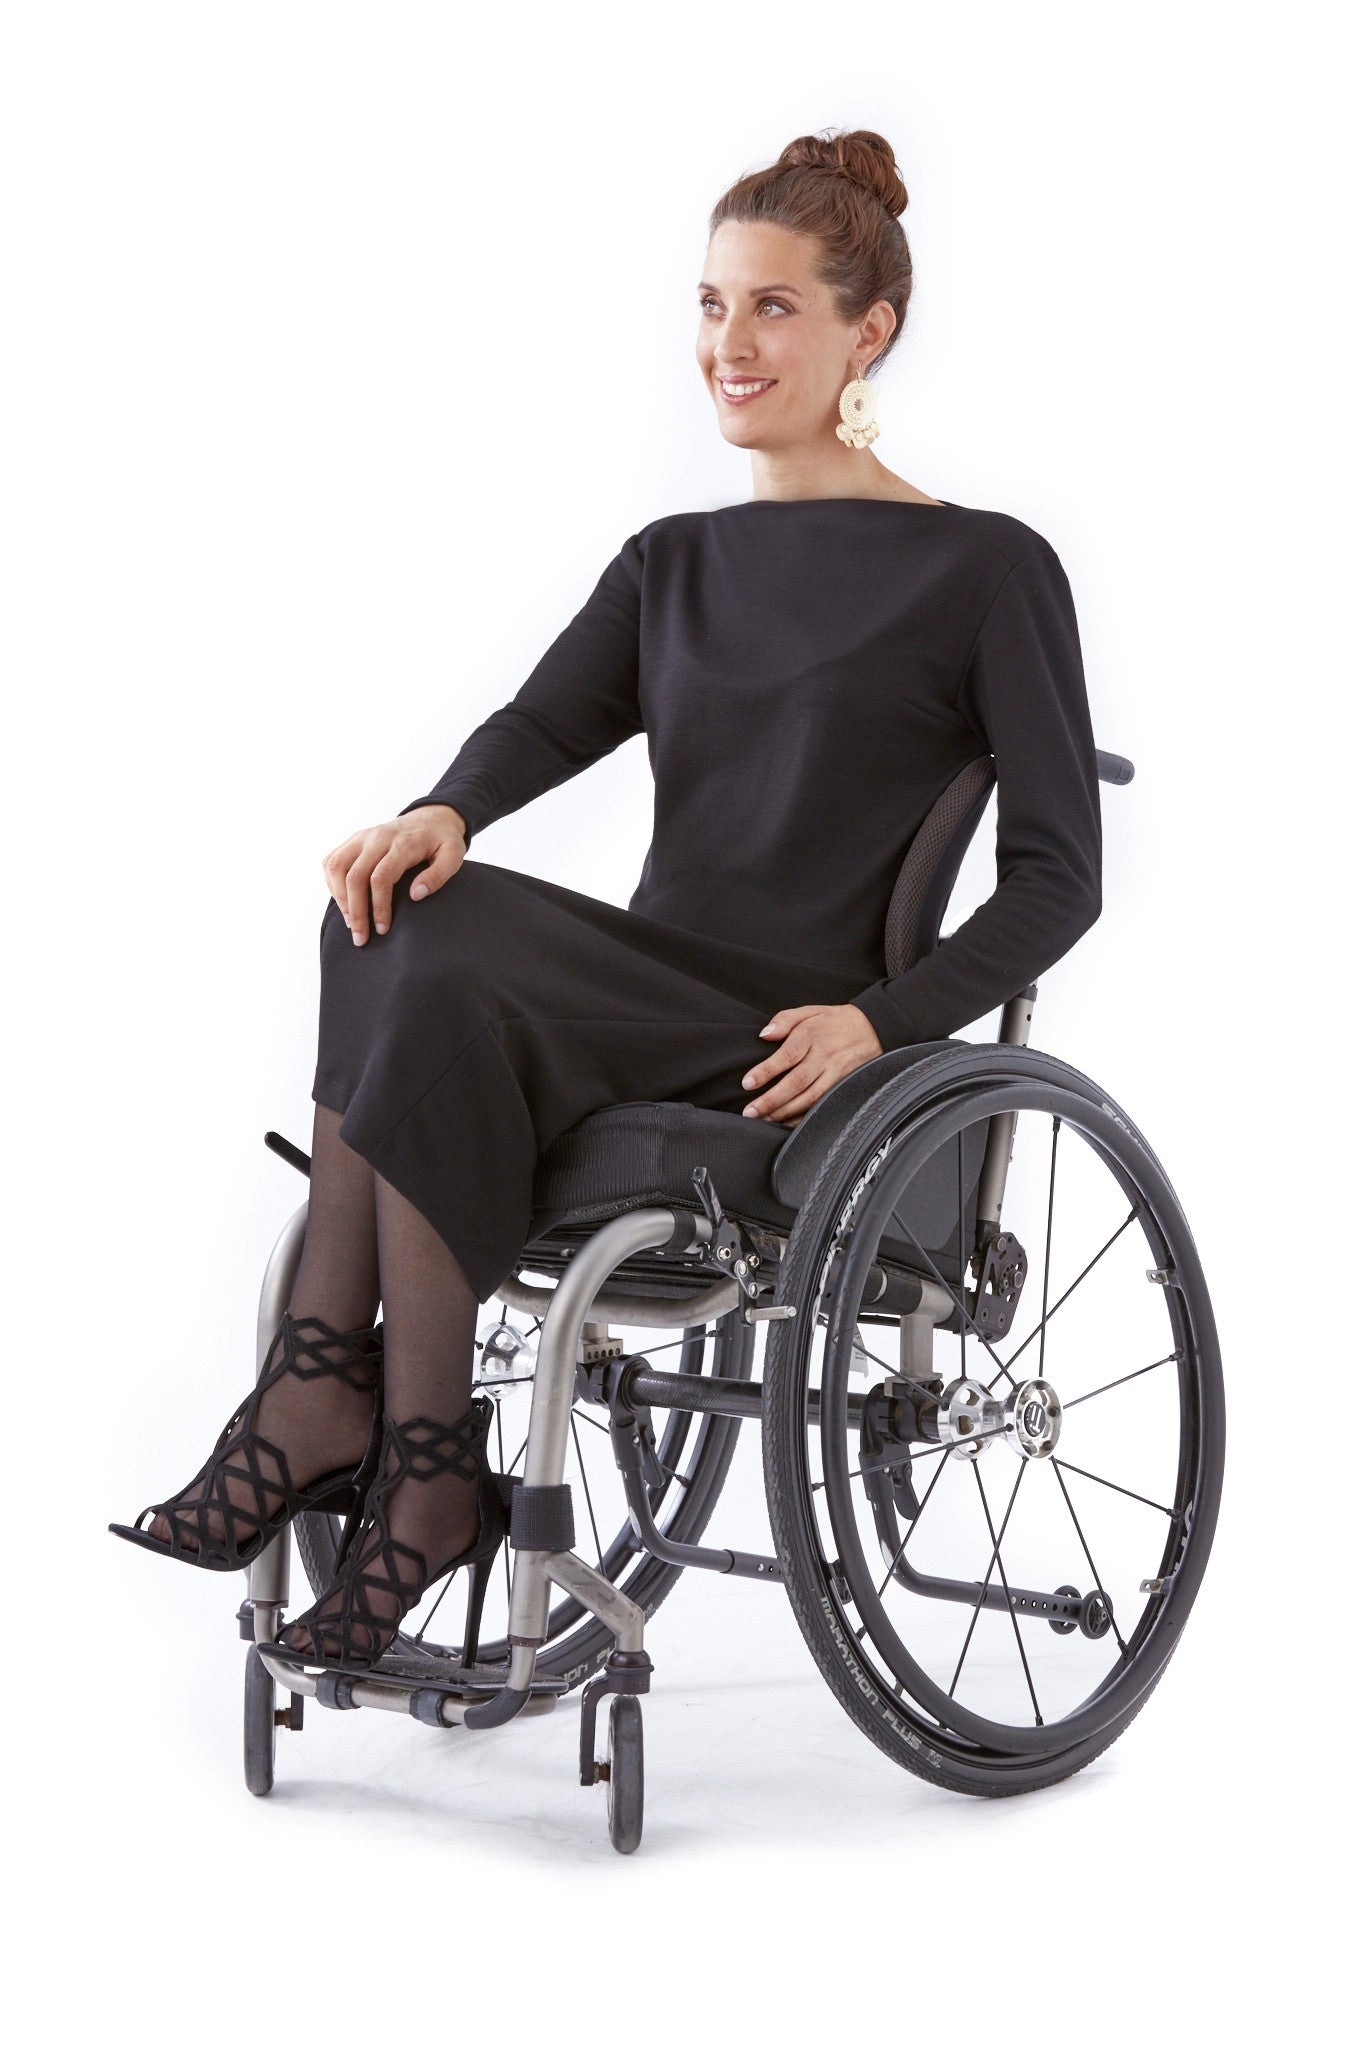 Wheelchair model wearing Boatneck Dress - A modern take on adaptive clothing for women.